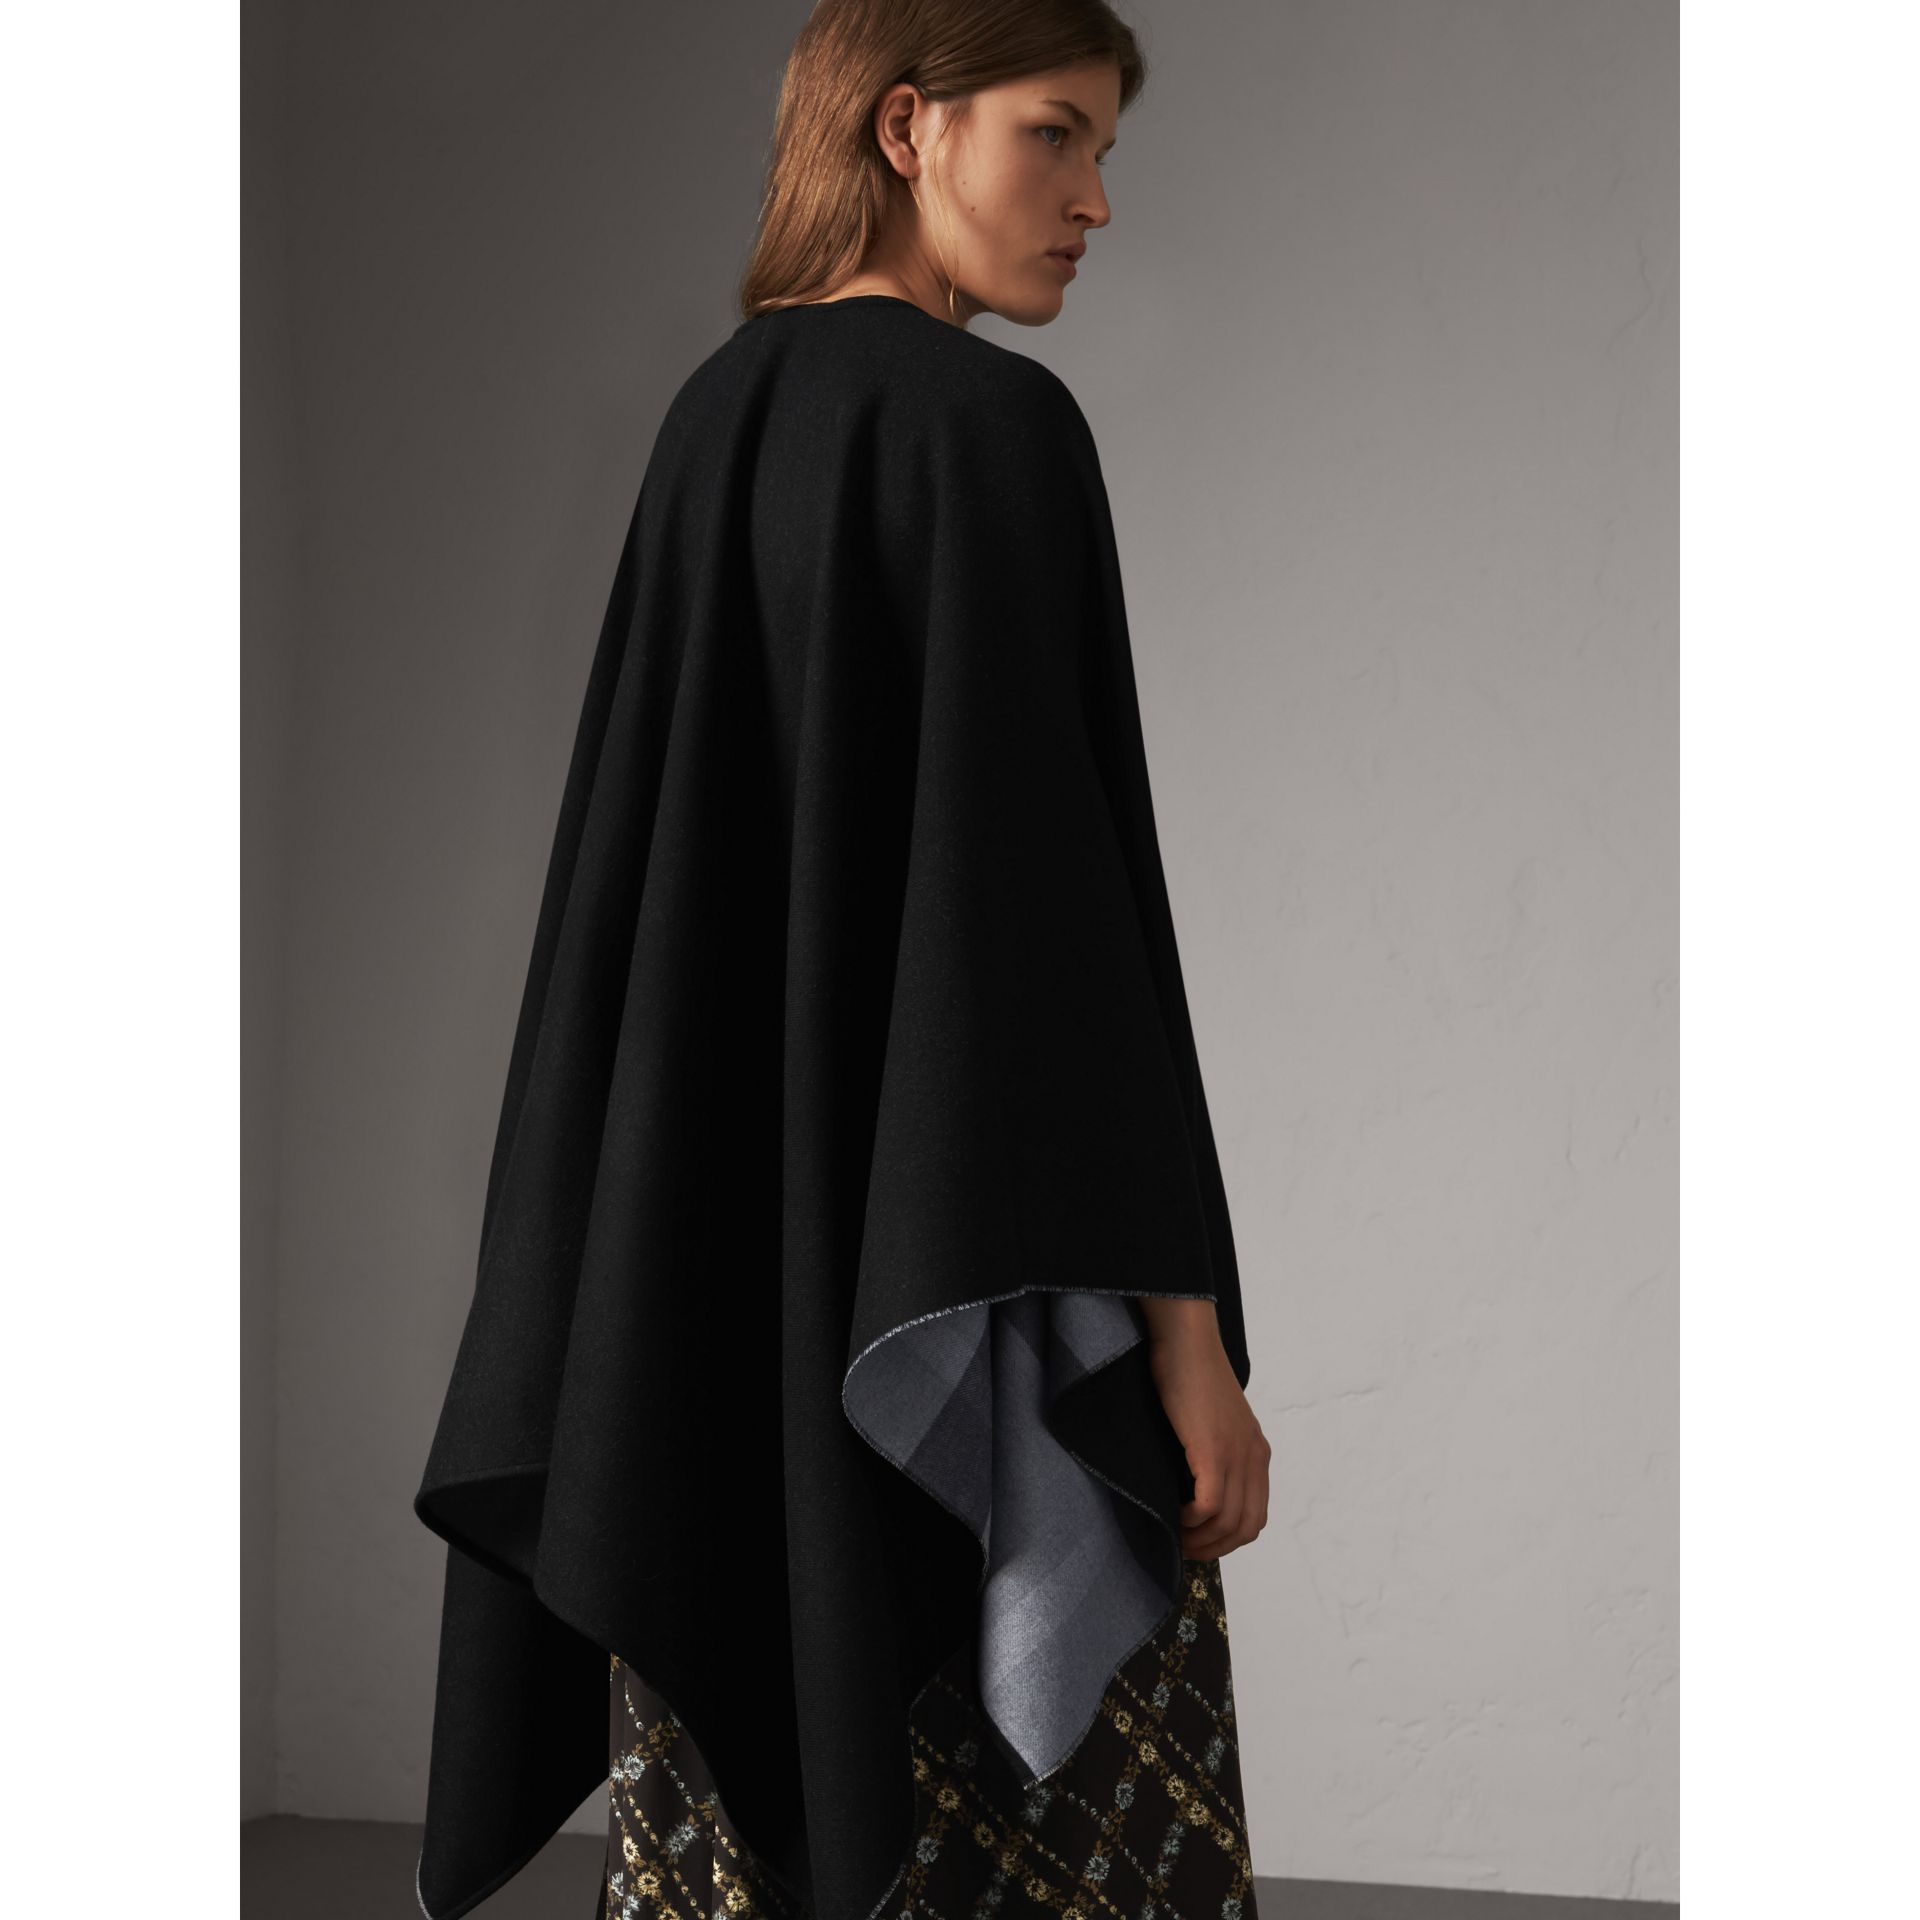 Reversible Check Merino Wool Poncho in Charcoal - Women | Burberry - gallery image 2